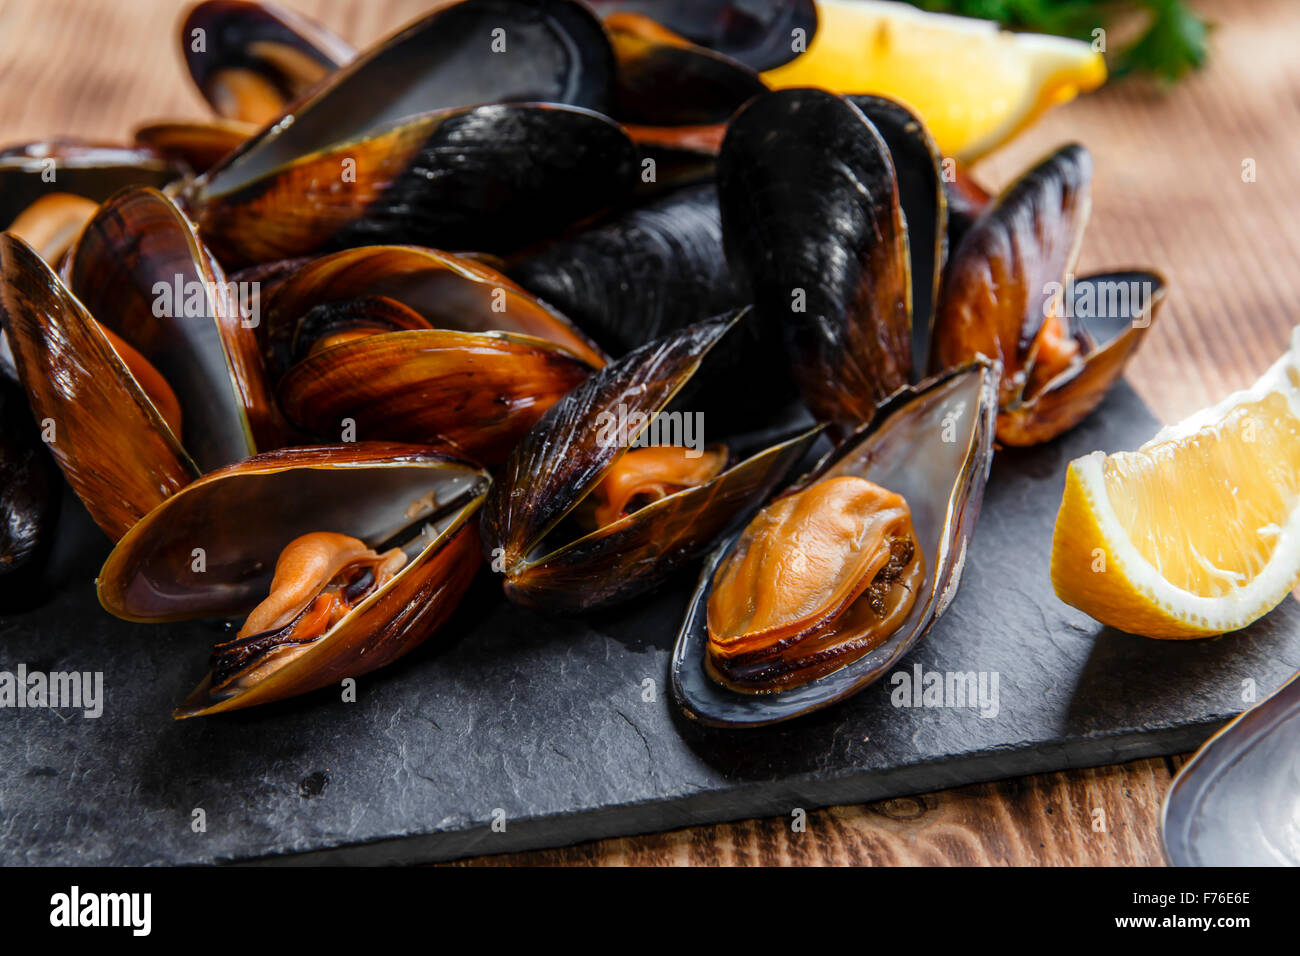 mussels steamed oysters with lemon and herbs - Stock Image